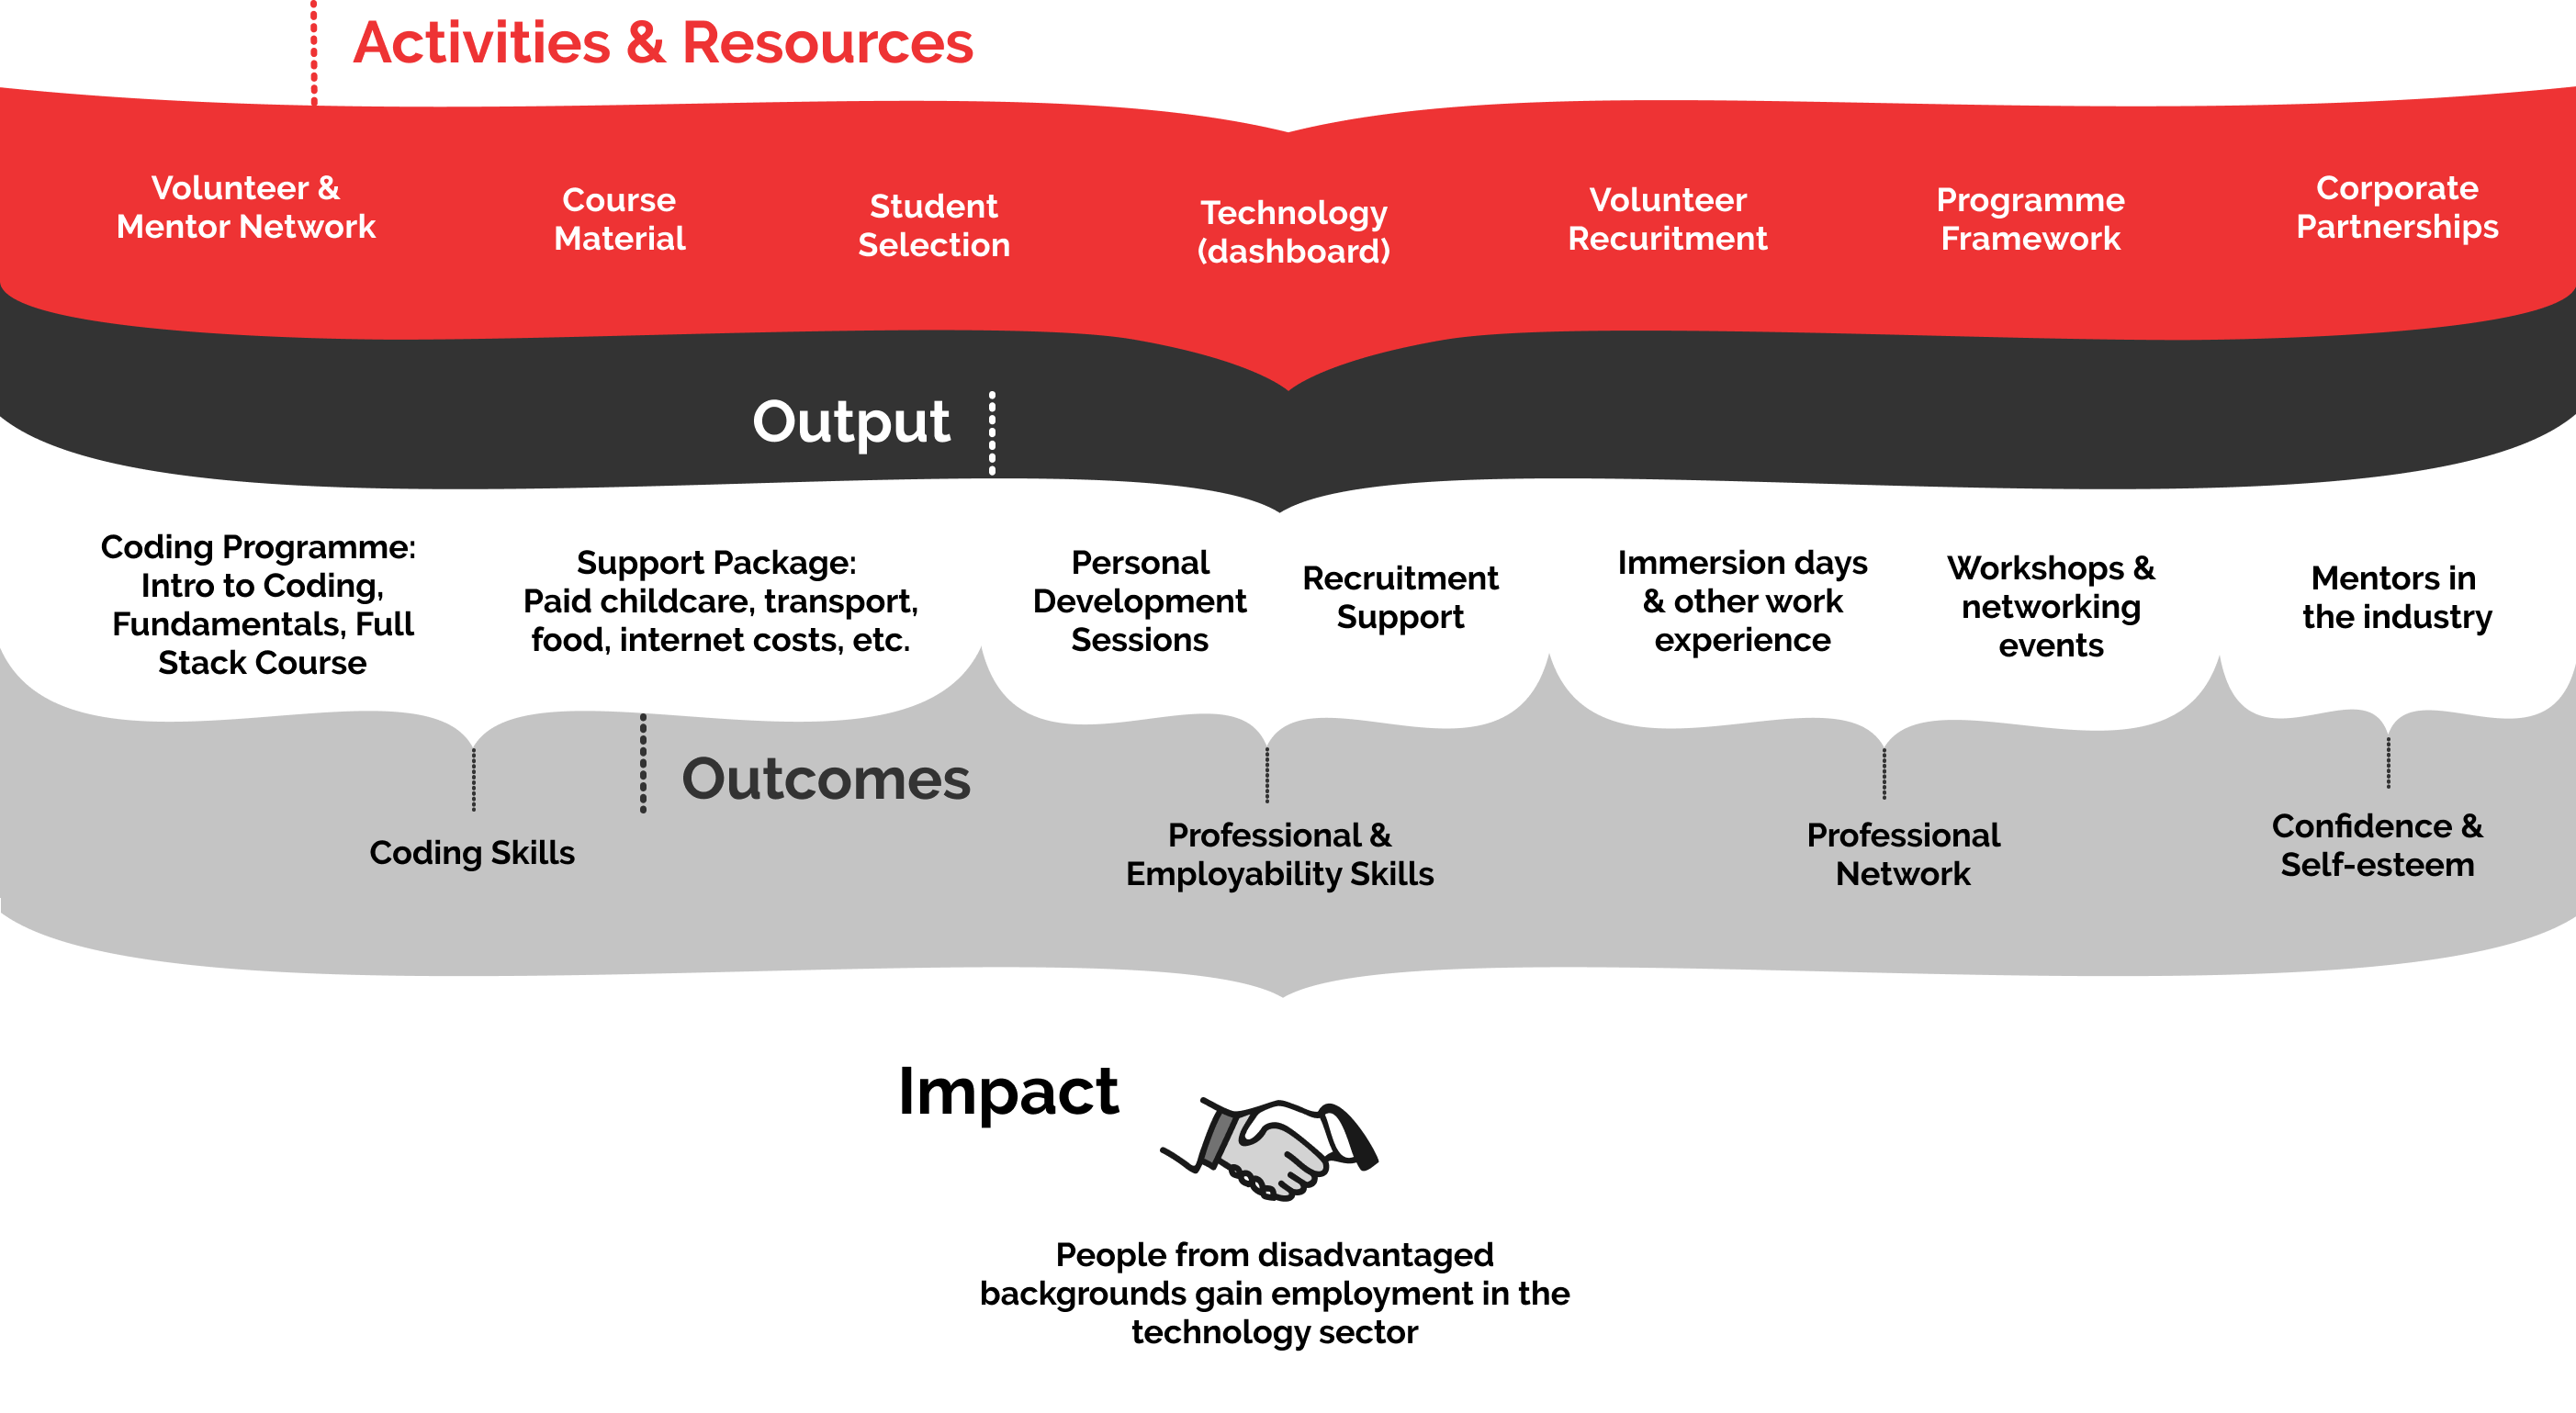 Theory of Change image